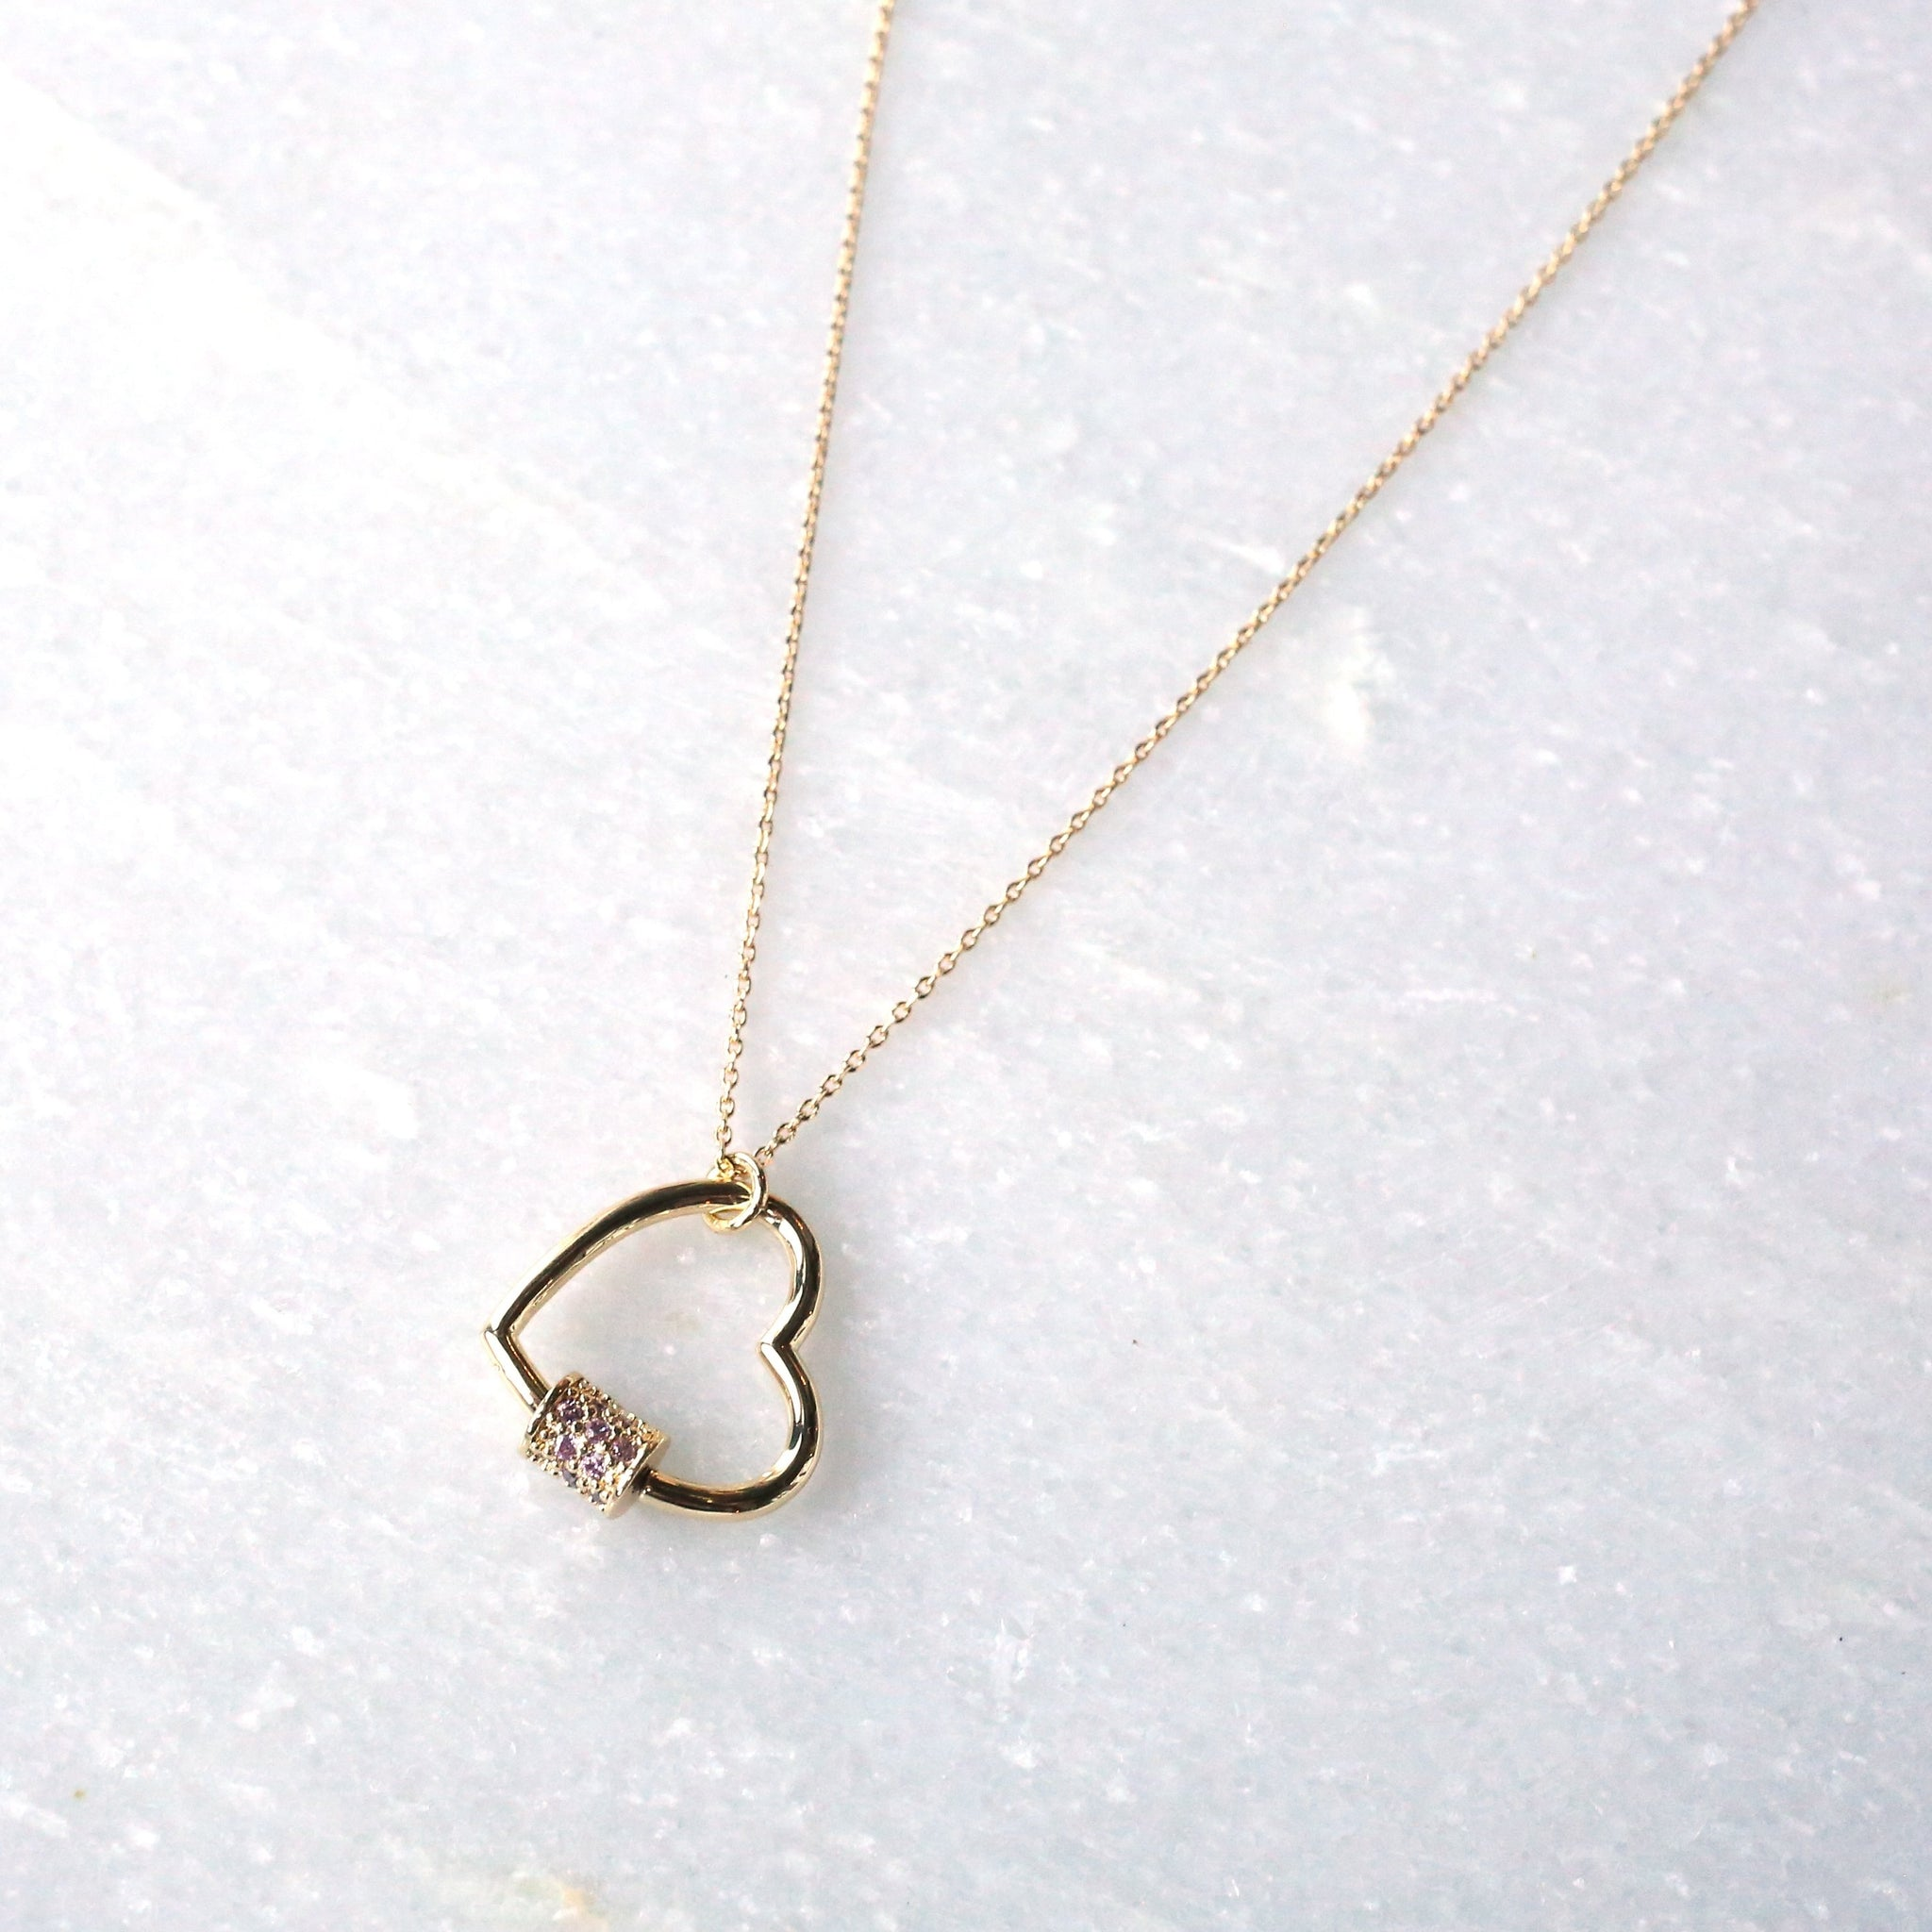 Gold Heart Carabiner Necklace